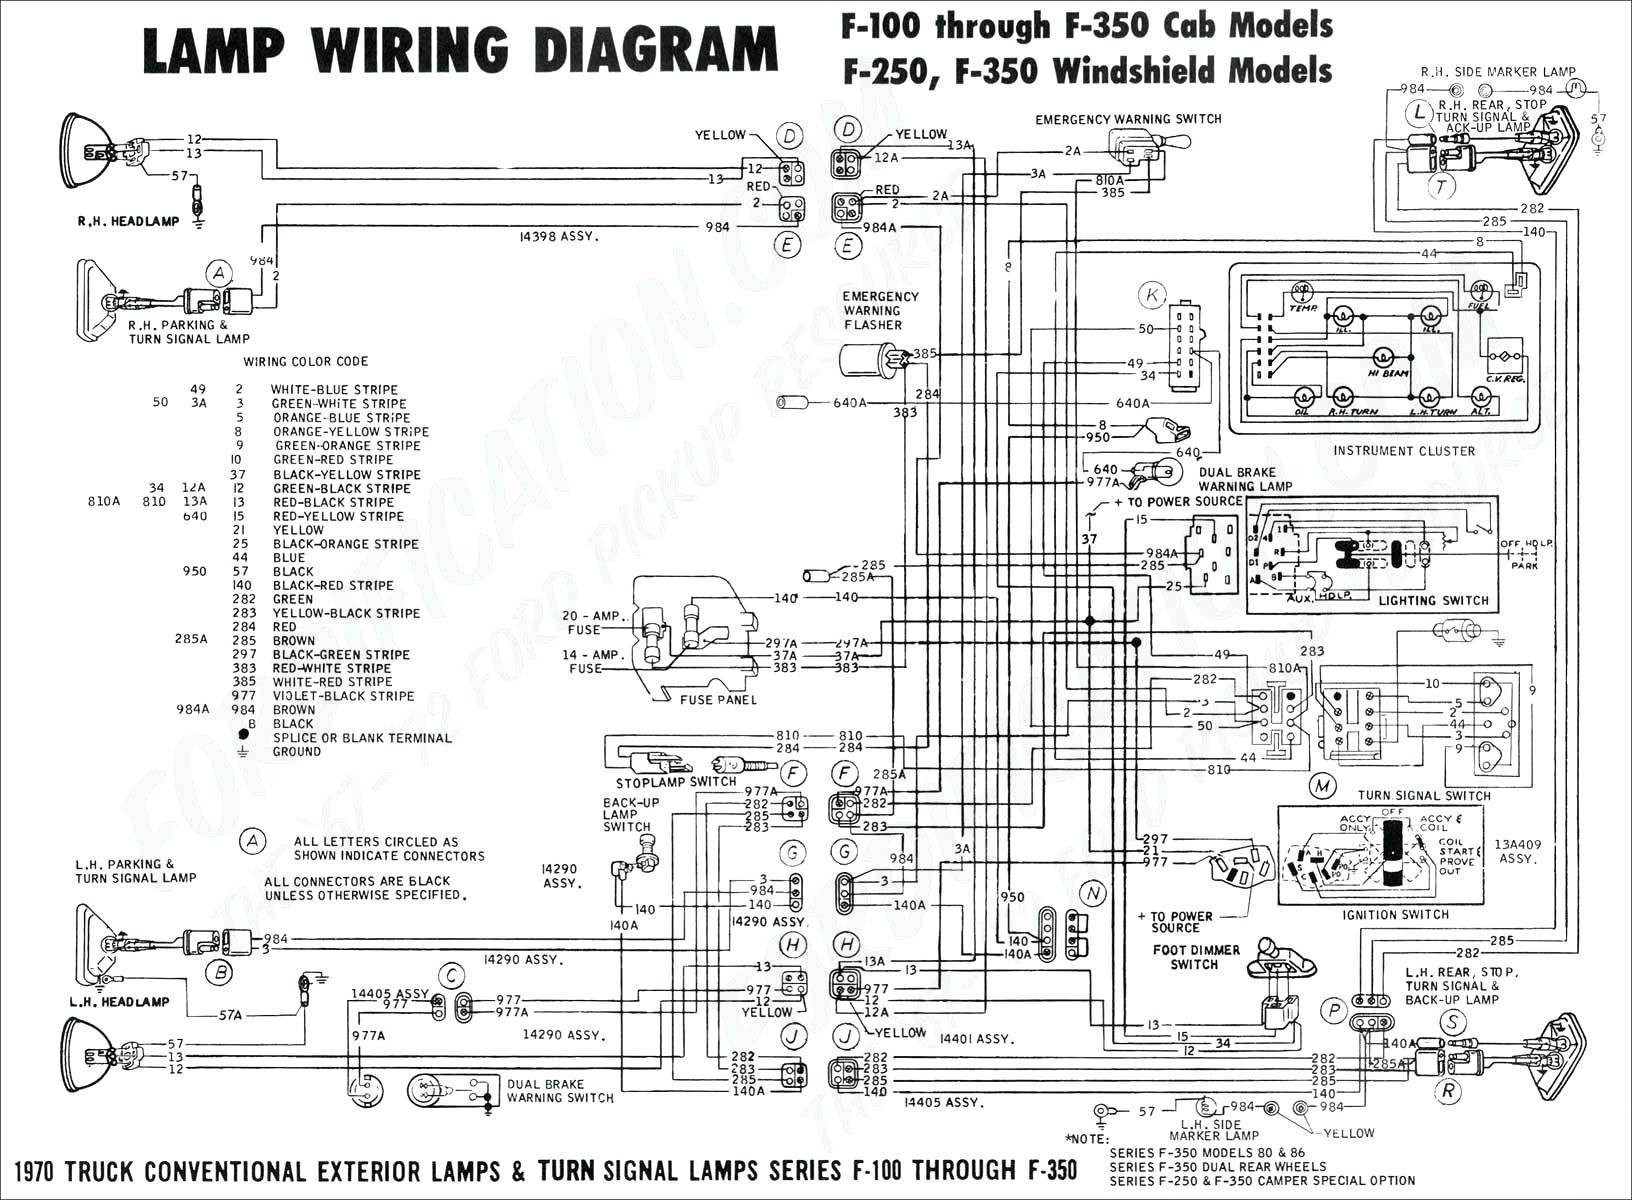 700r4 Transmission Wiring Diagram My Wiring Diagram